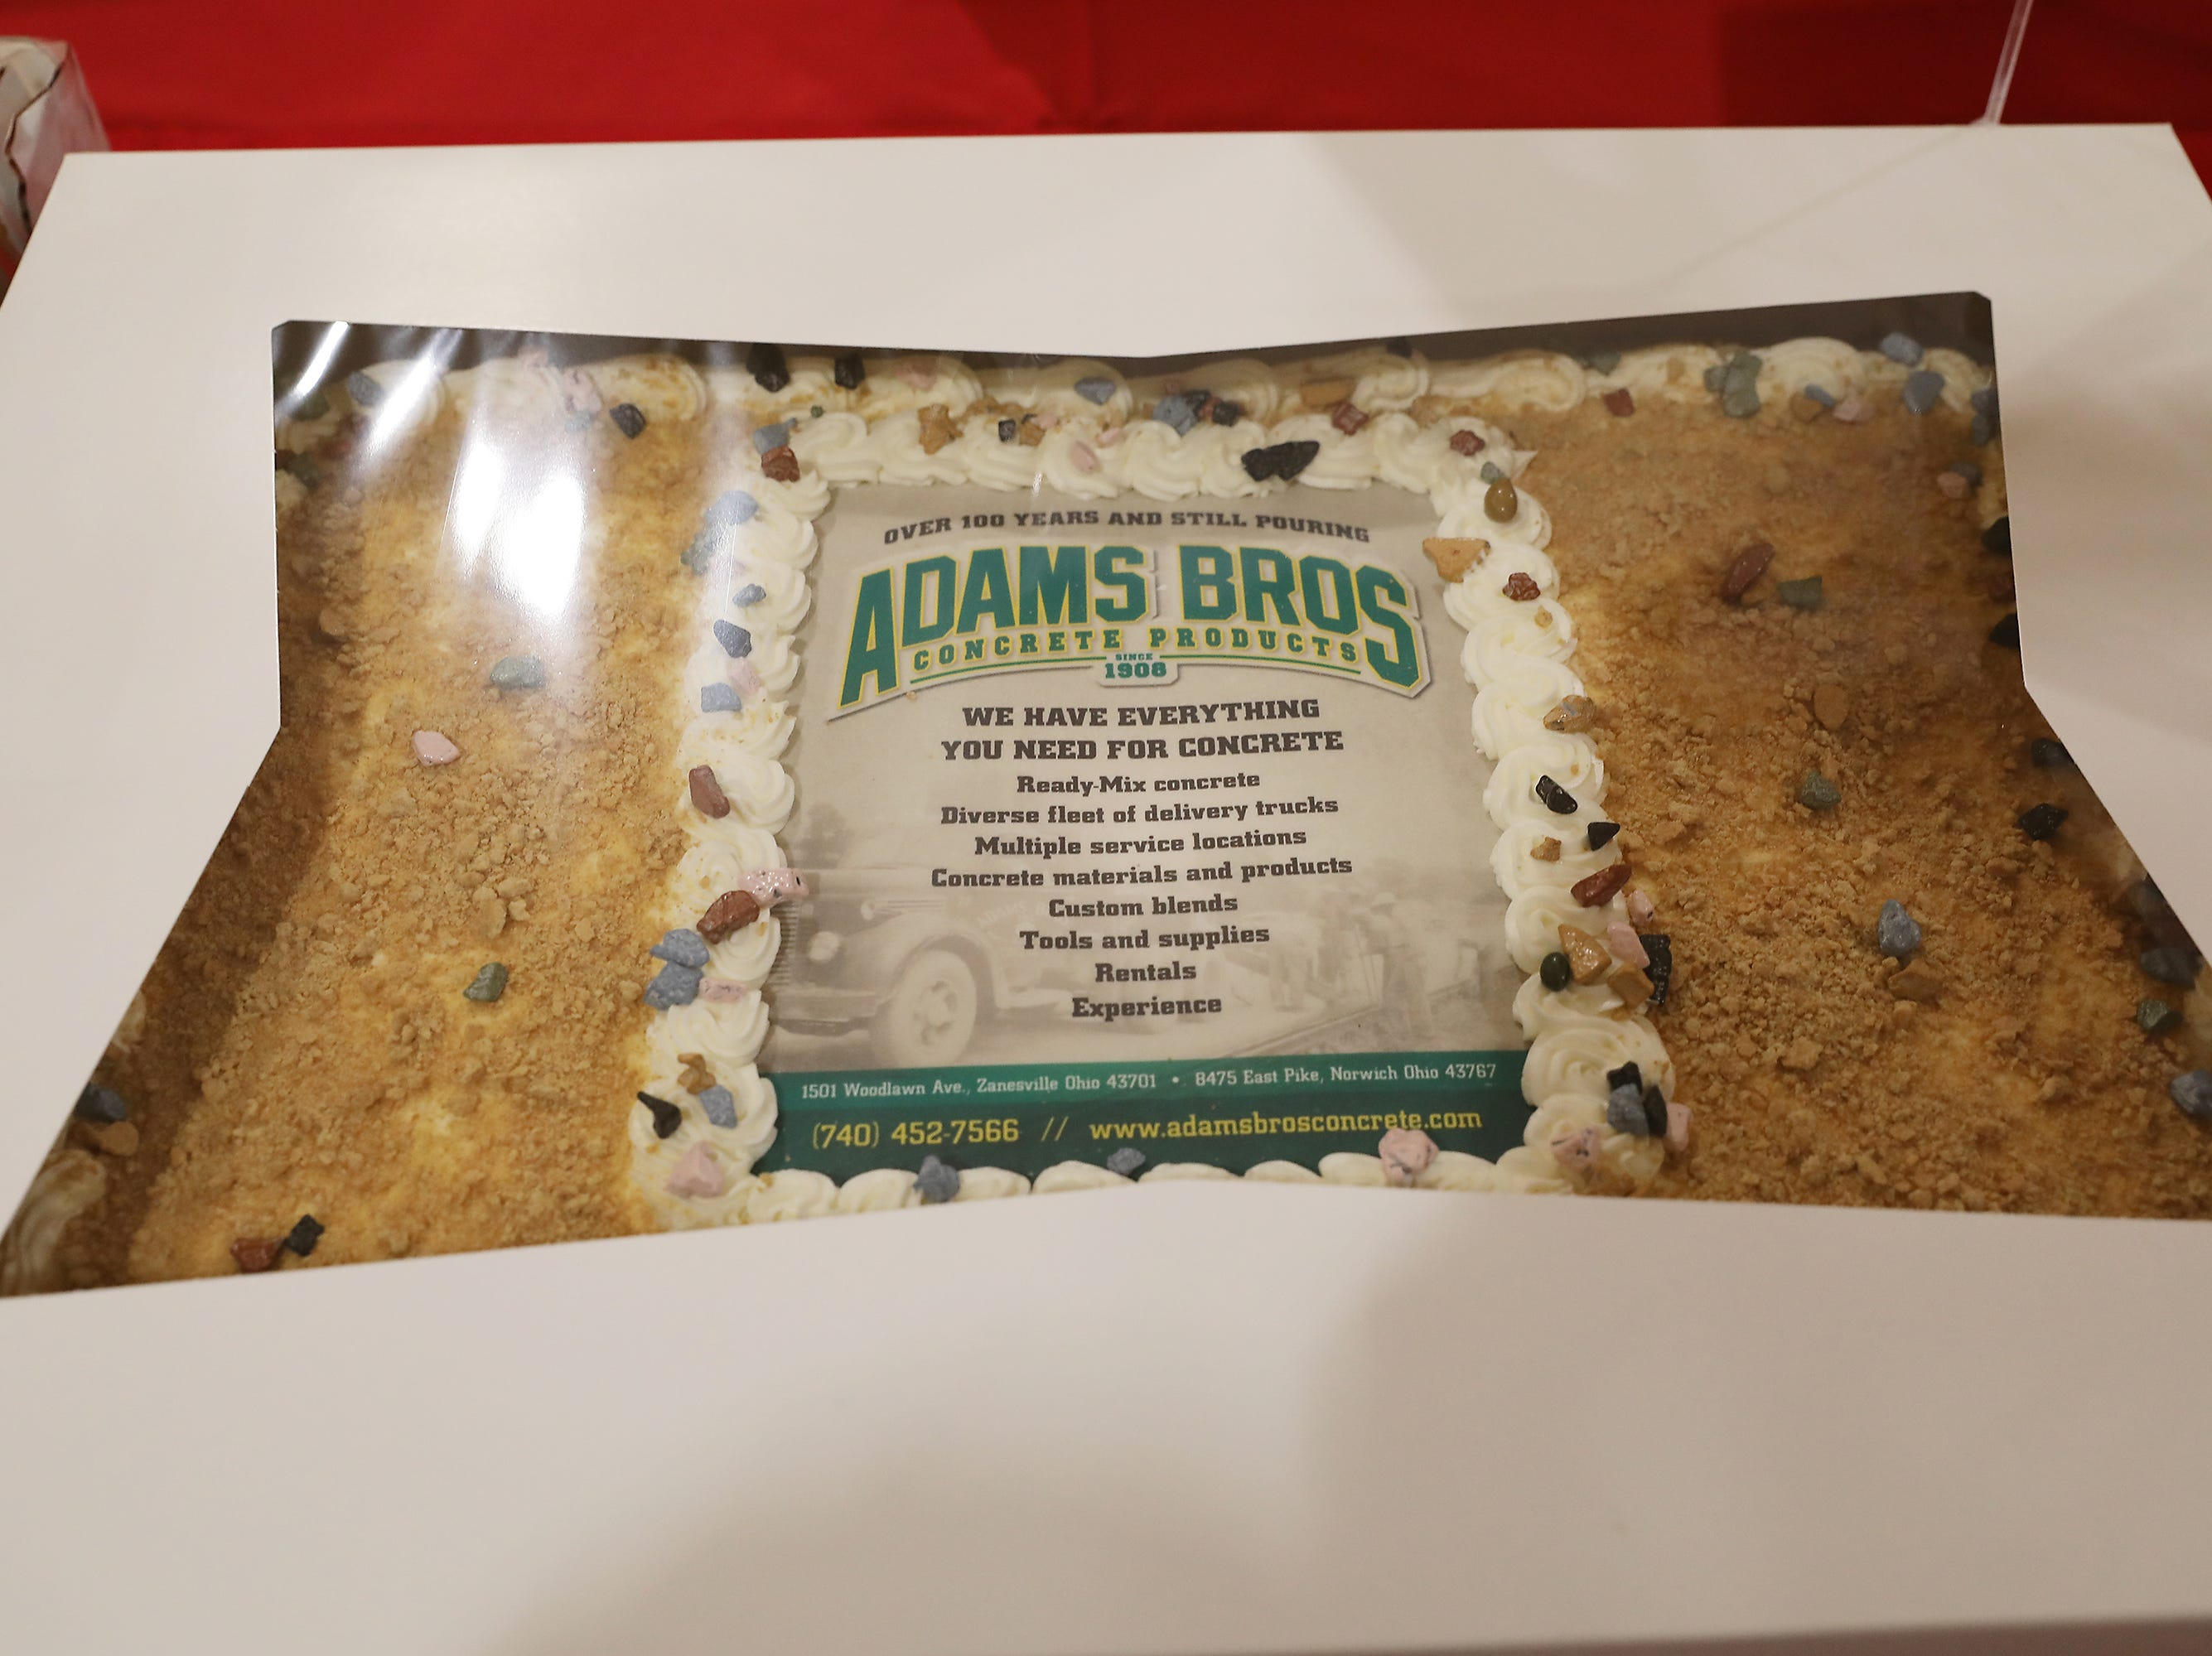 2:40 P.M. Friday cake 339 Adams Bros. - 3 yards of concrete, delivered in county